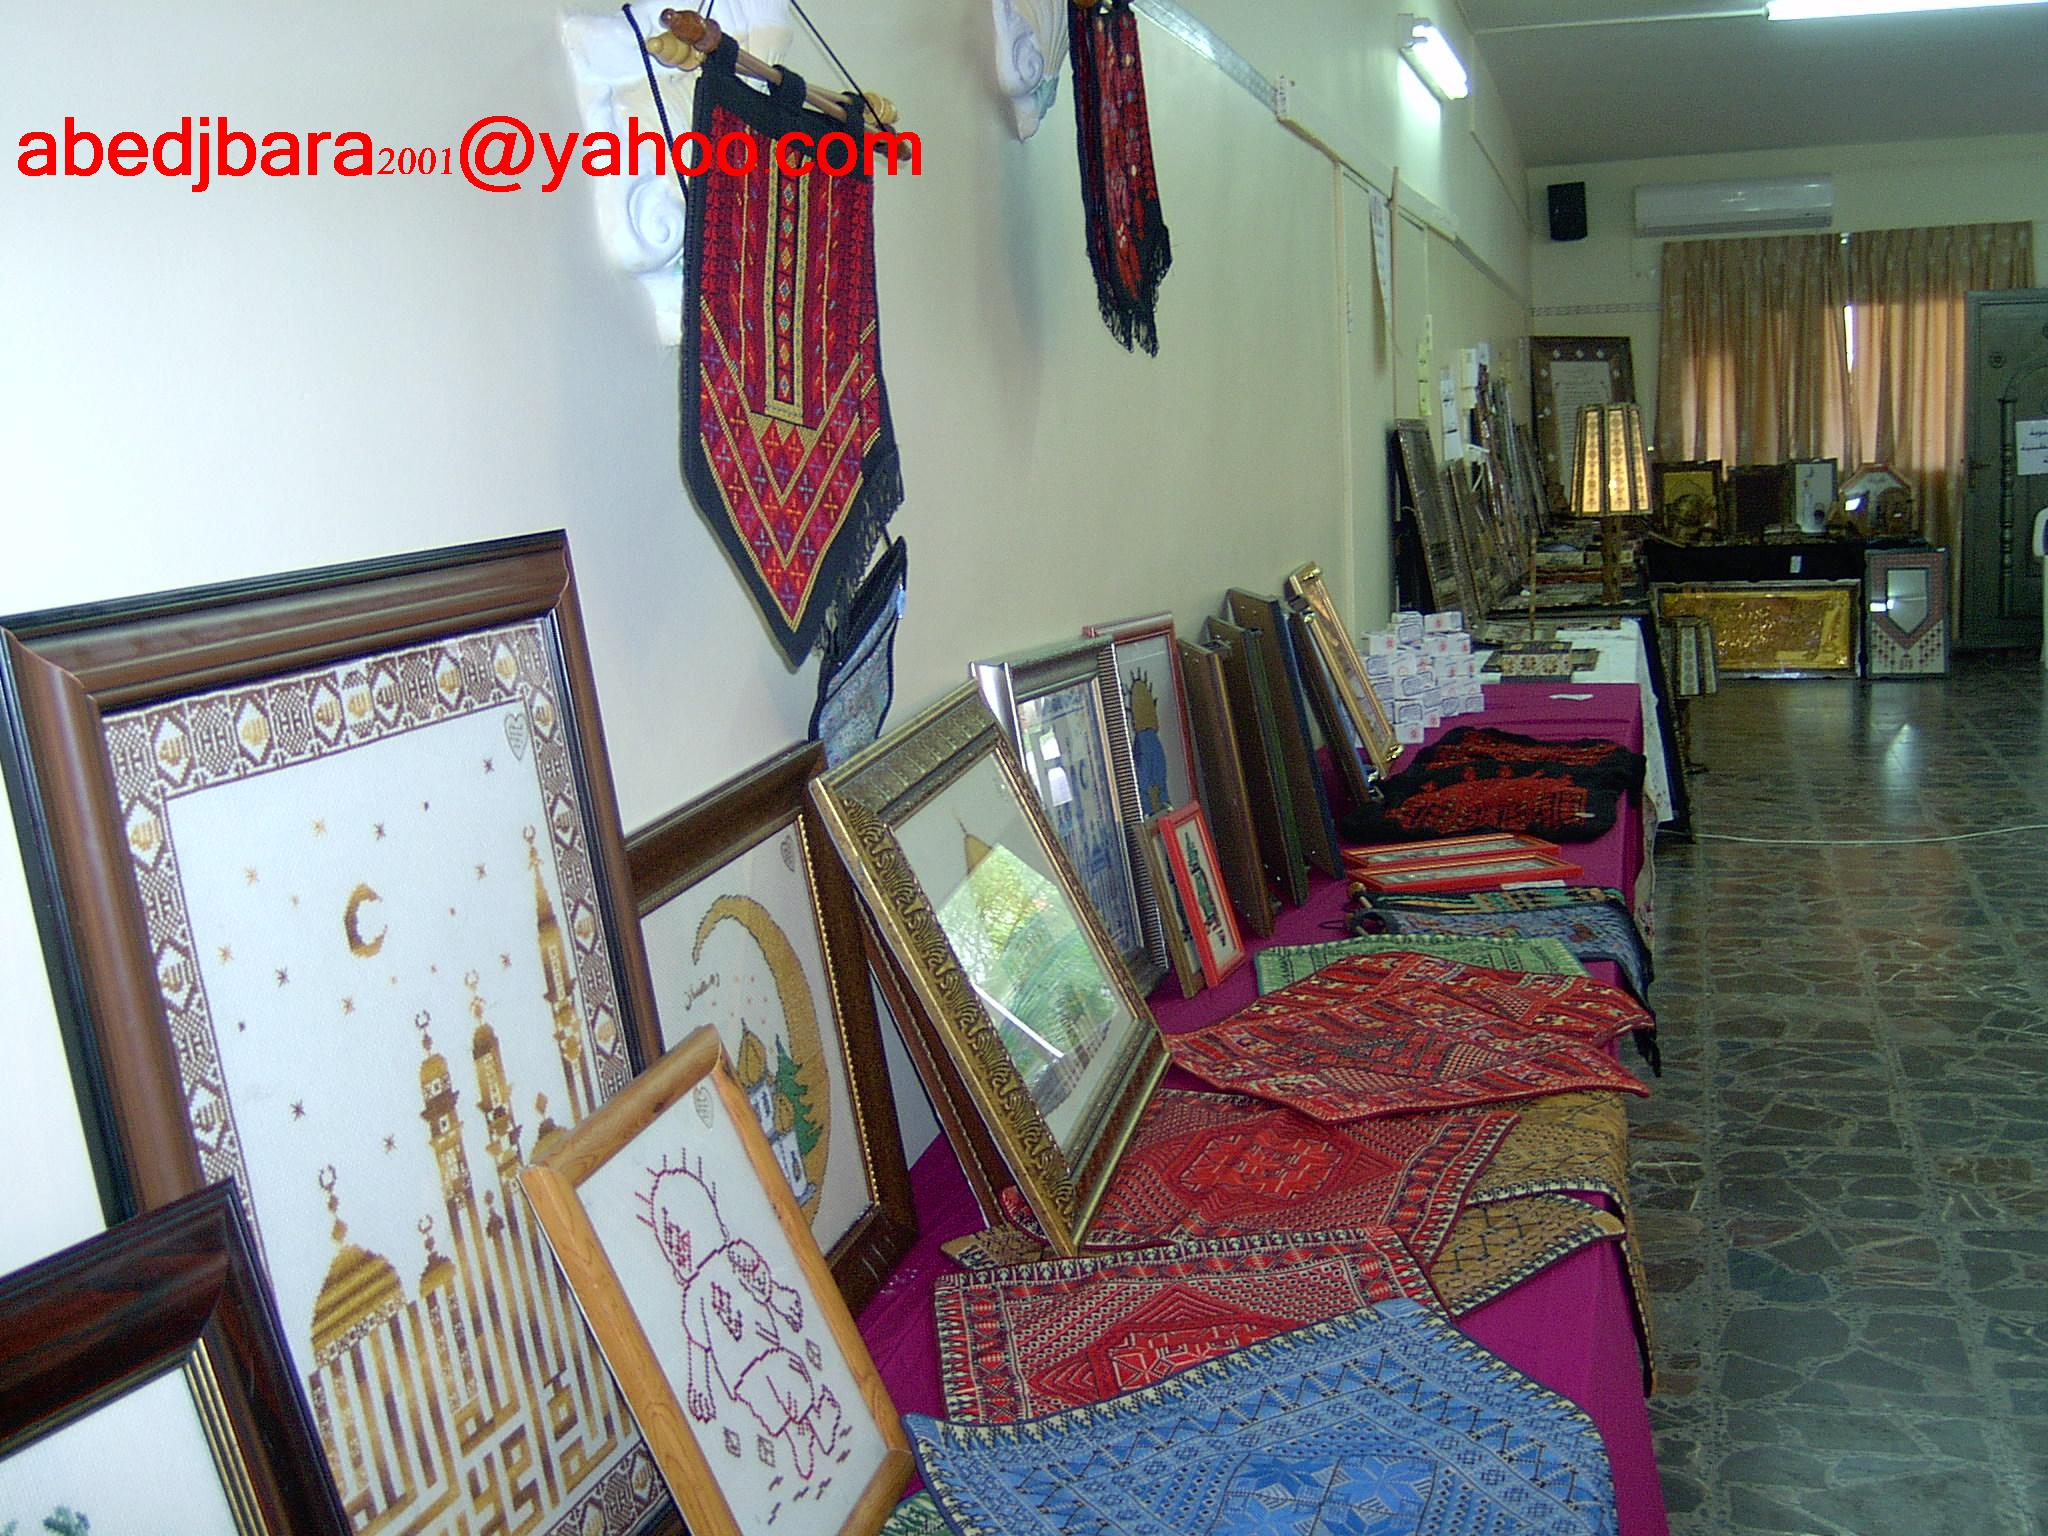 Tulkarm - طولكرم : اعمال تطريز يدوي-embroideries of Tulkarm